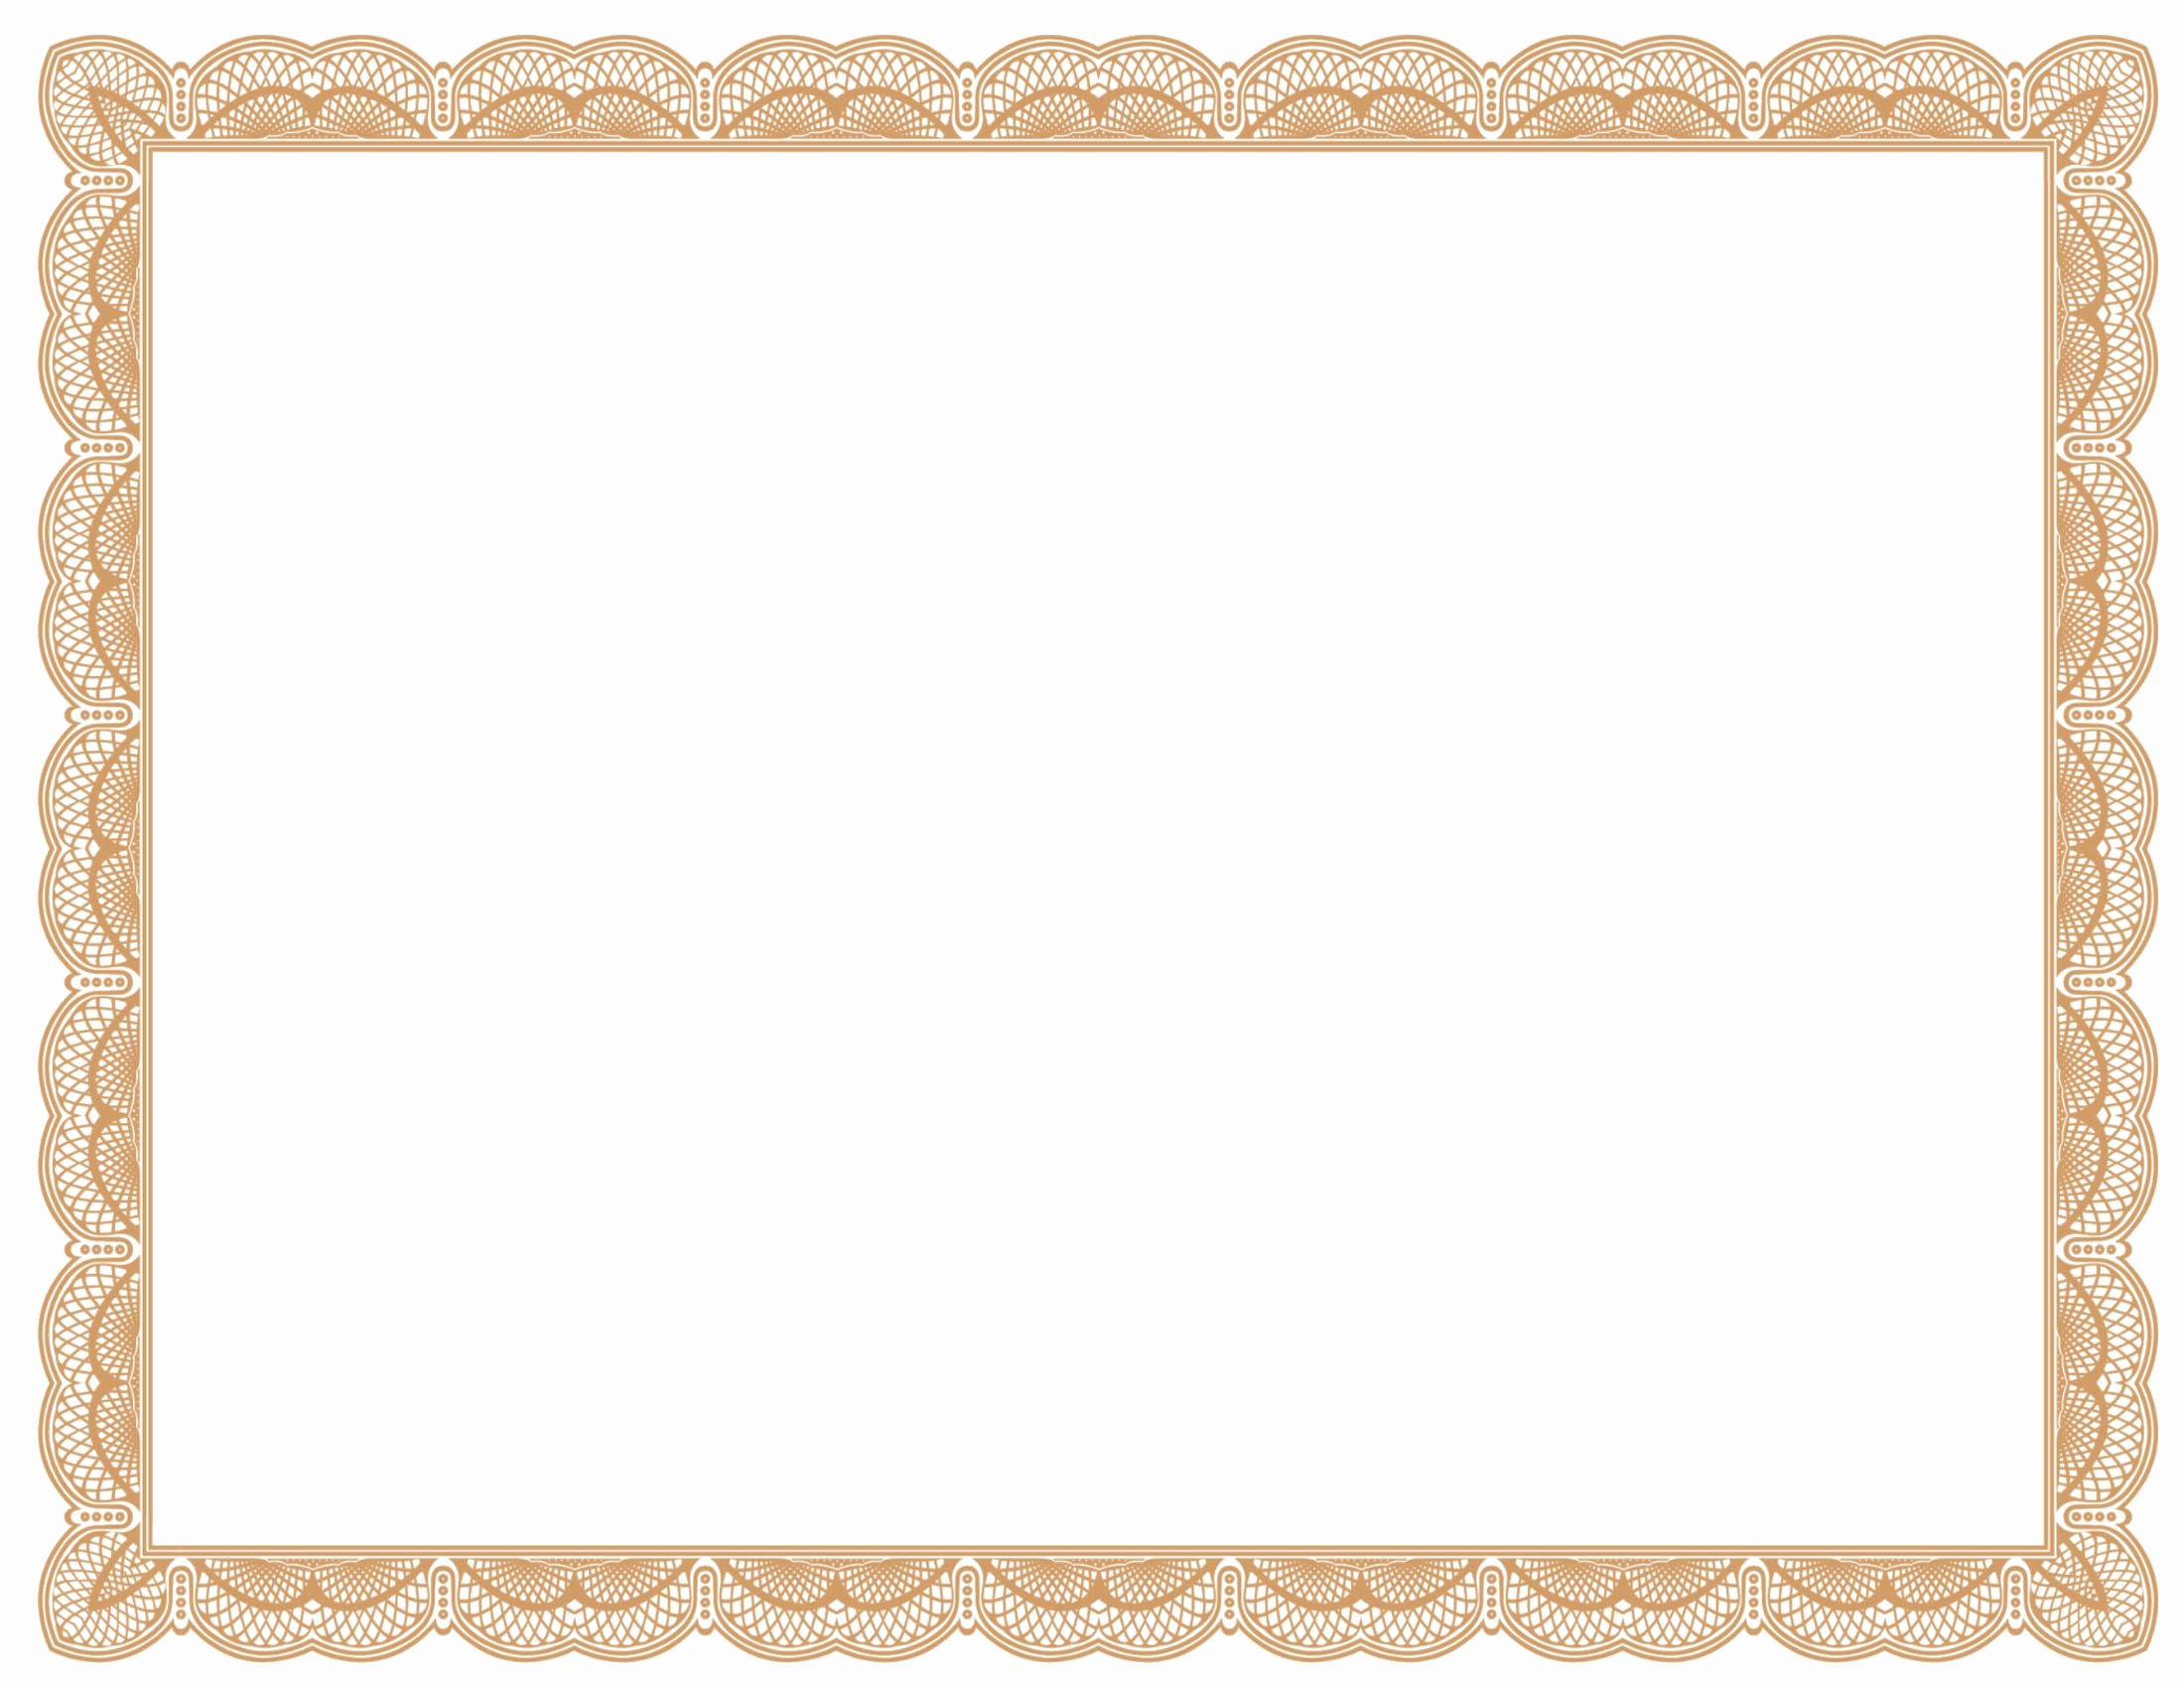 Certificate Border Design Free Download Best Of 5 Blank Certificate Designs